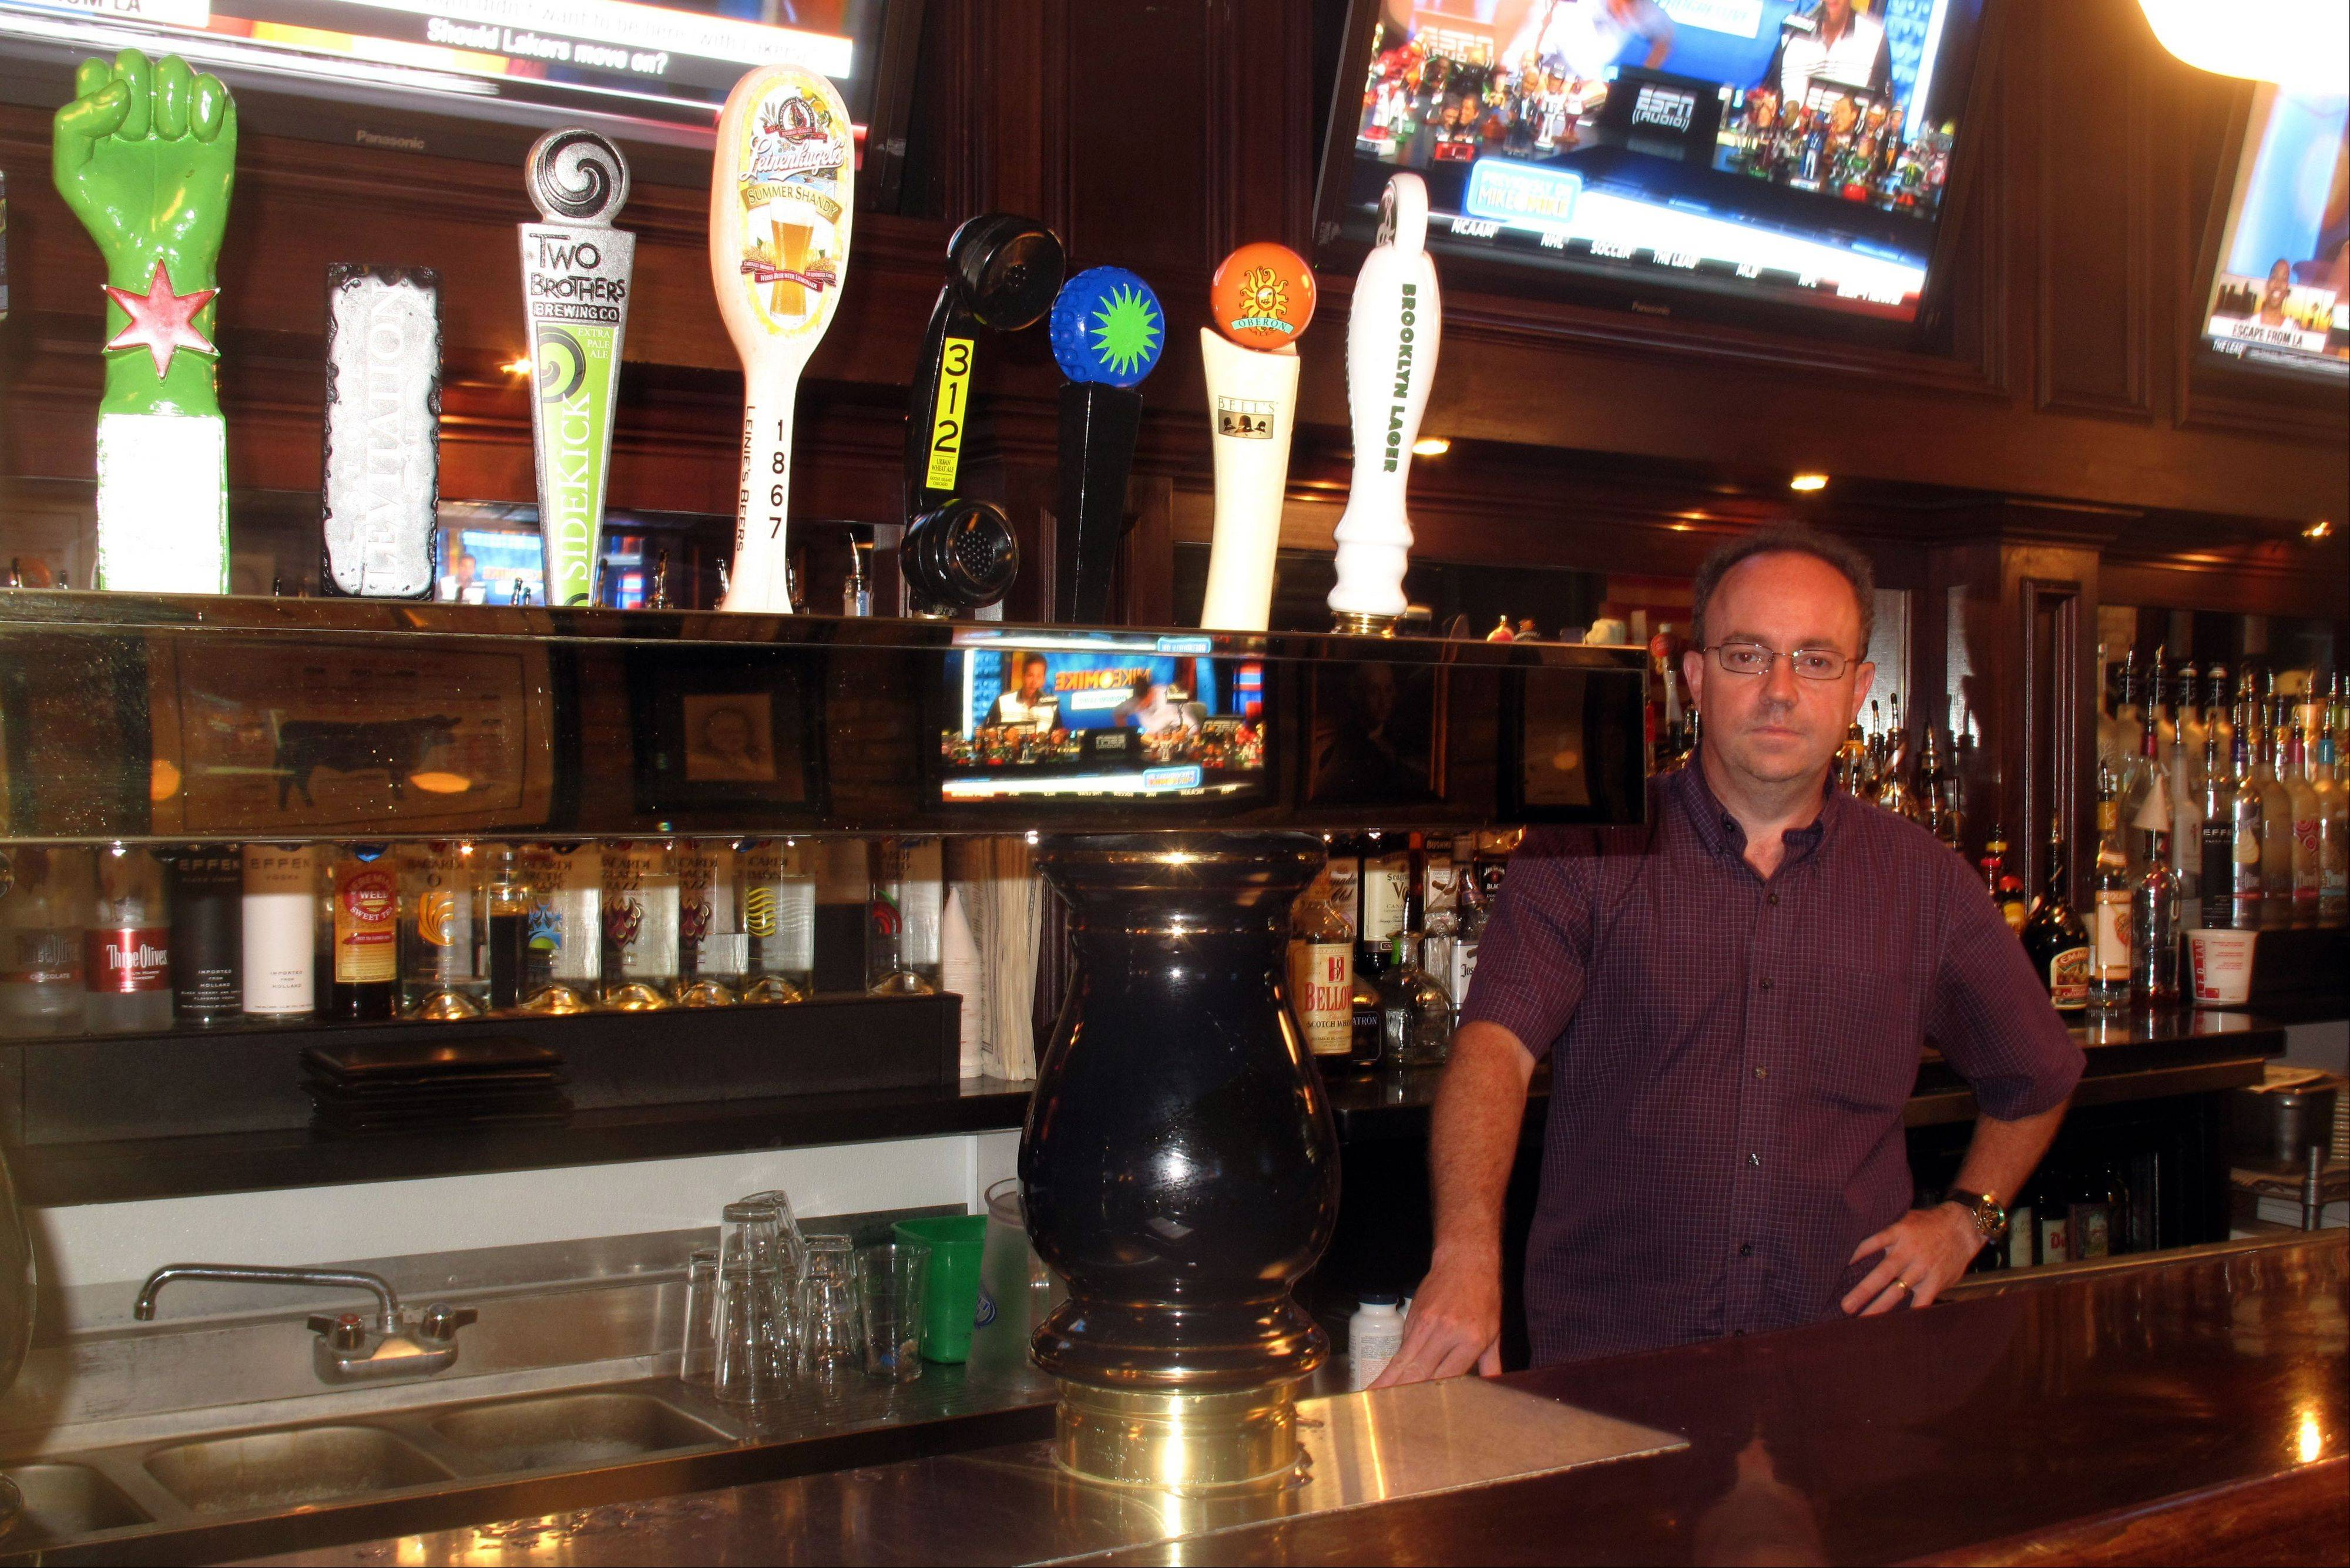 Jim Bergeron, owner of the Wise Boxer Pour House at 16 W. Jefferson Ave. in downtown Naperville, is offering a new selection of craft beers and a completely different menu at the restaurant and pub, which he took over from the long-controversial BlackFinn American Saloon.